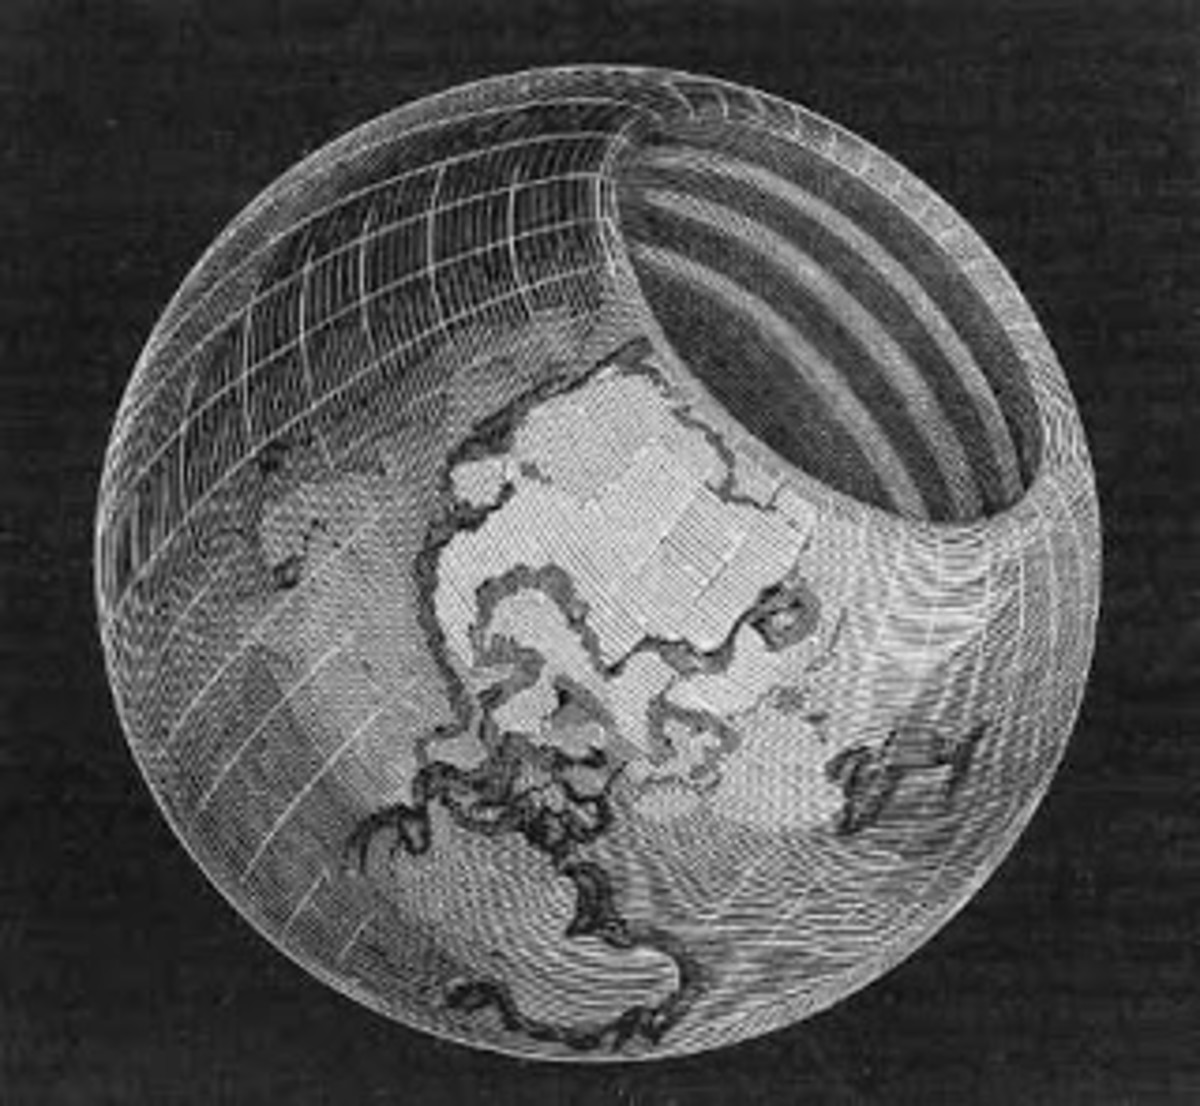 The Strange Tale of Symmes Hole and the Hollow Earth Theory